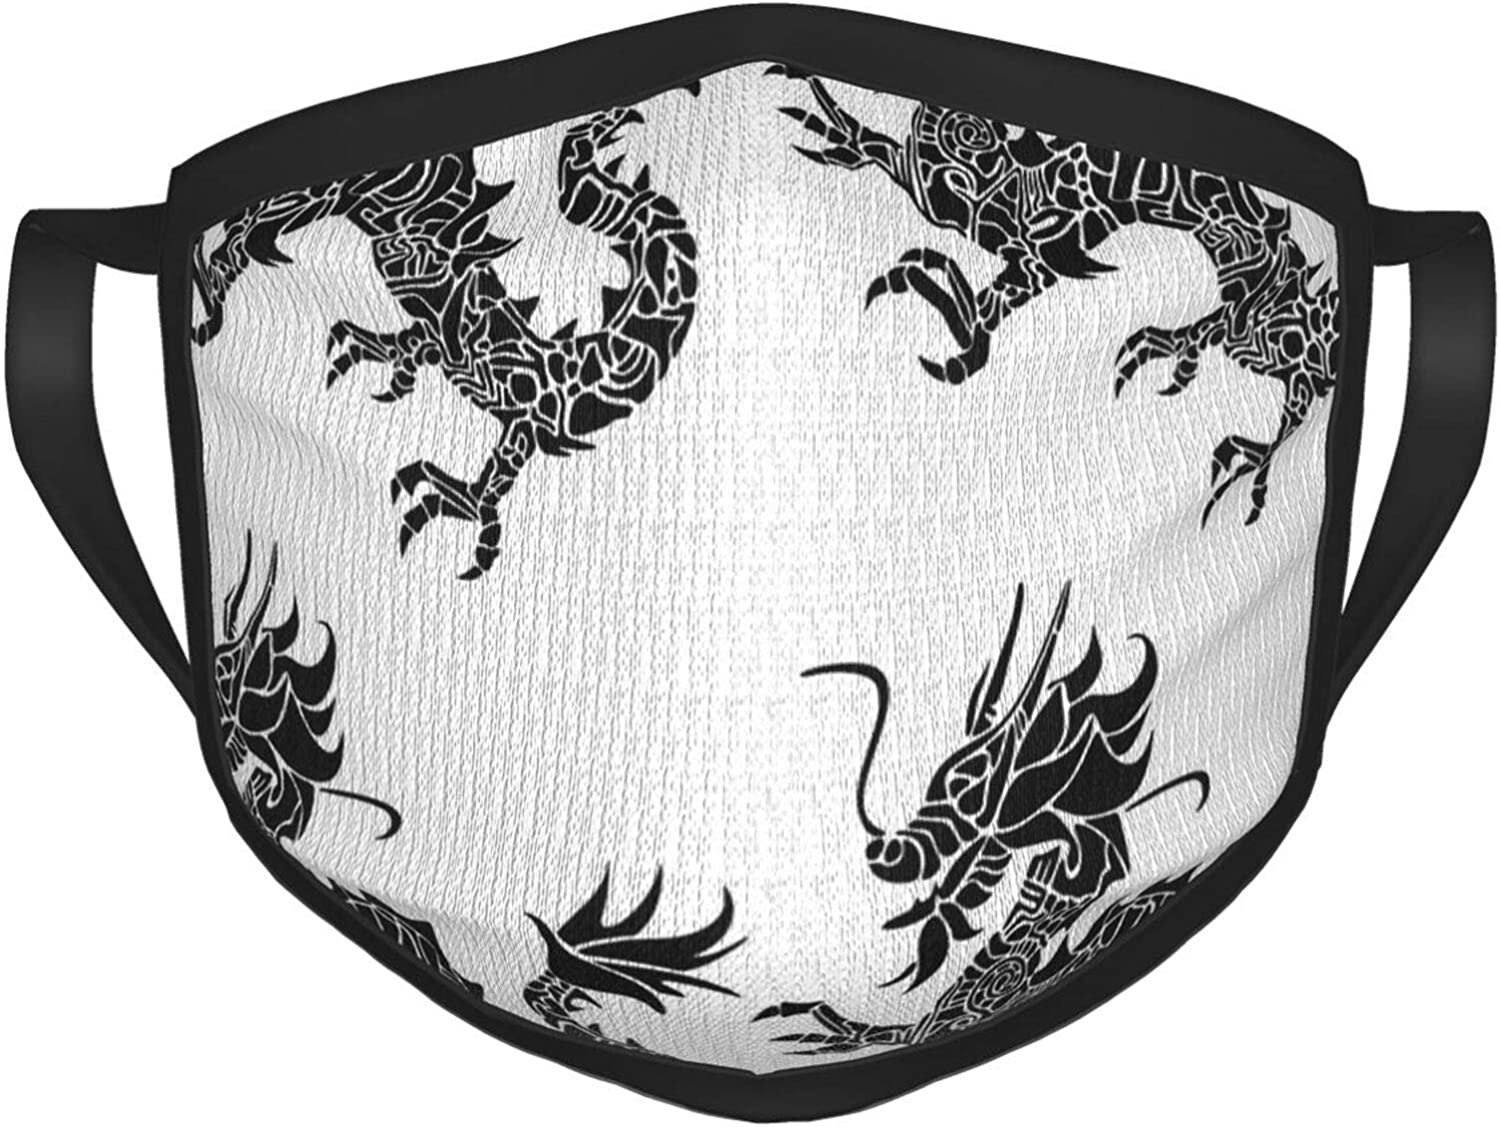 LANJYF 2 Packs Reusable Mouth Wear, Asian Dragon Silhouette Unisex Facial Covering